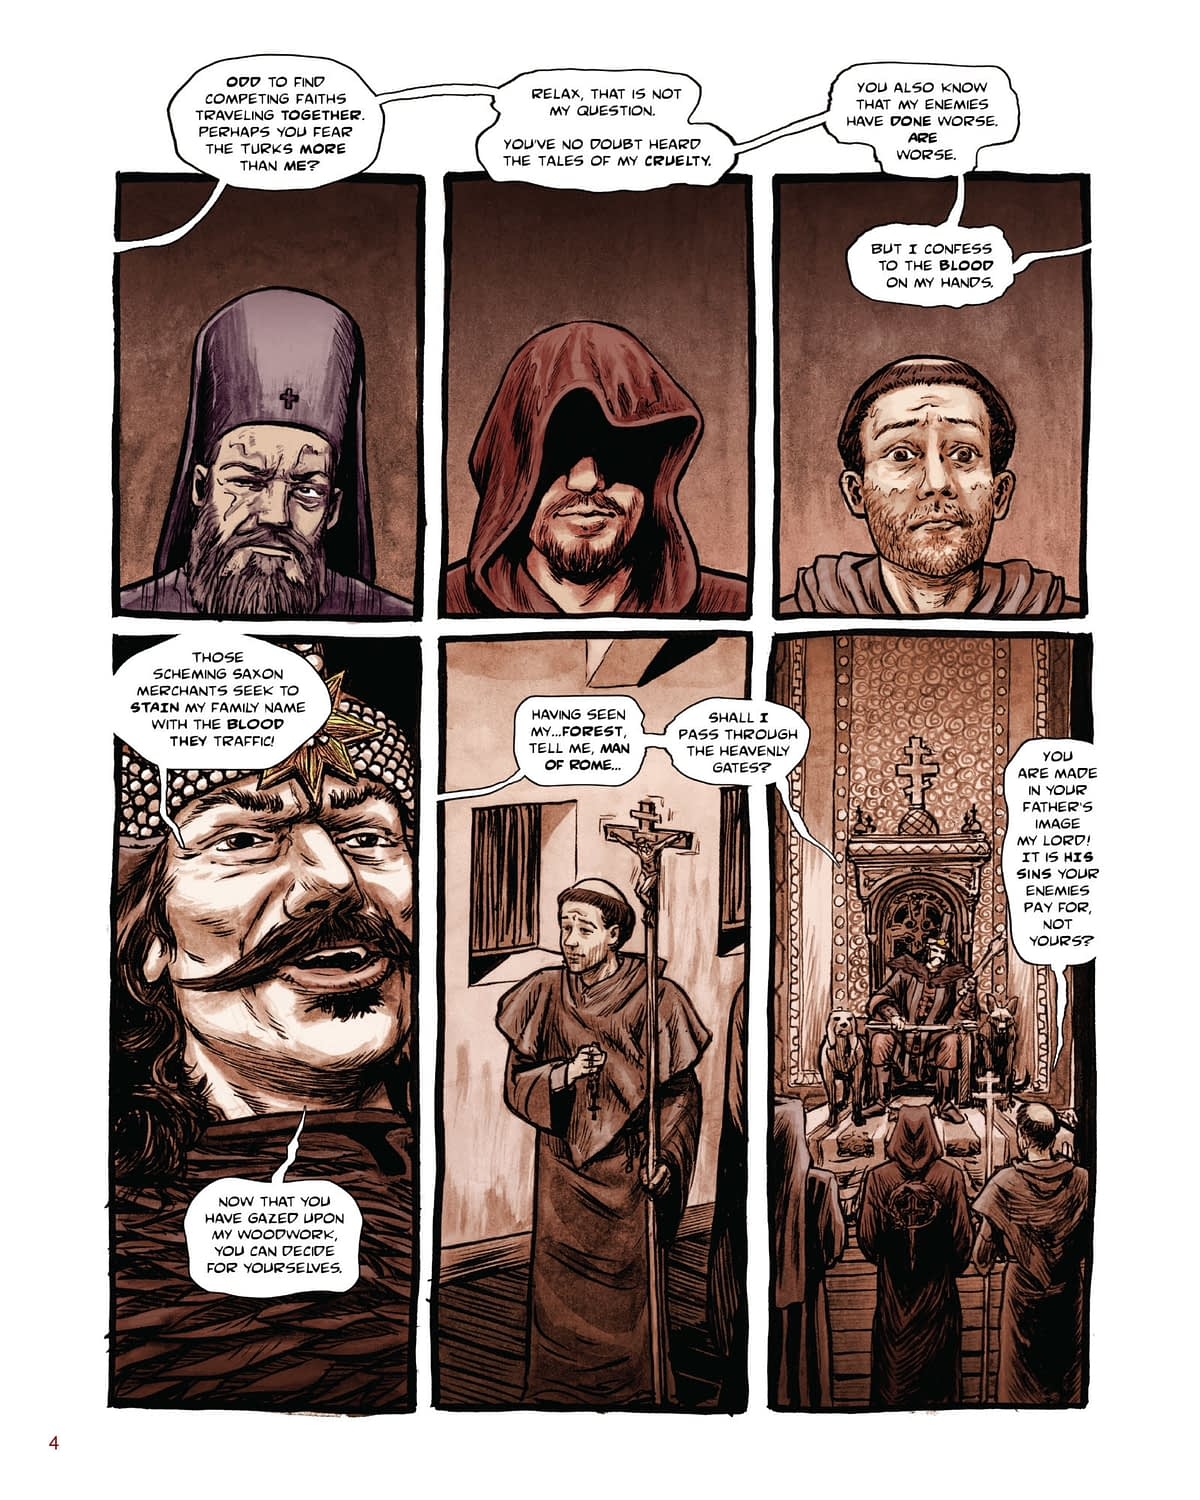 ComiXology Gets Scary for Halloween with New Horror Originals by Alex de Campi, Chip Zdarsky, More